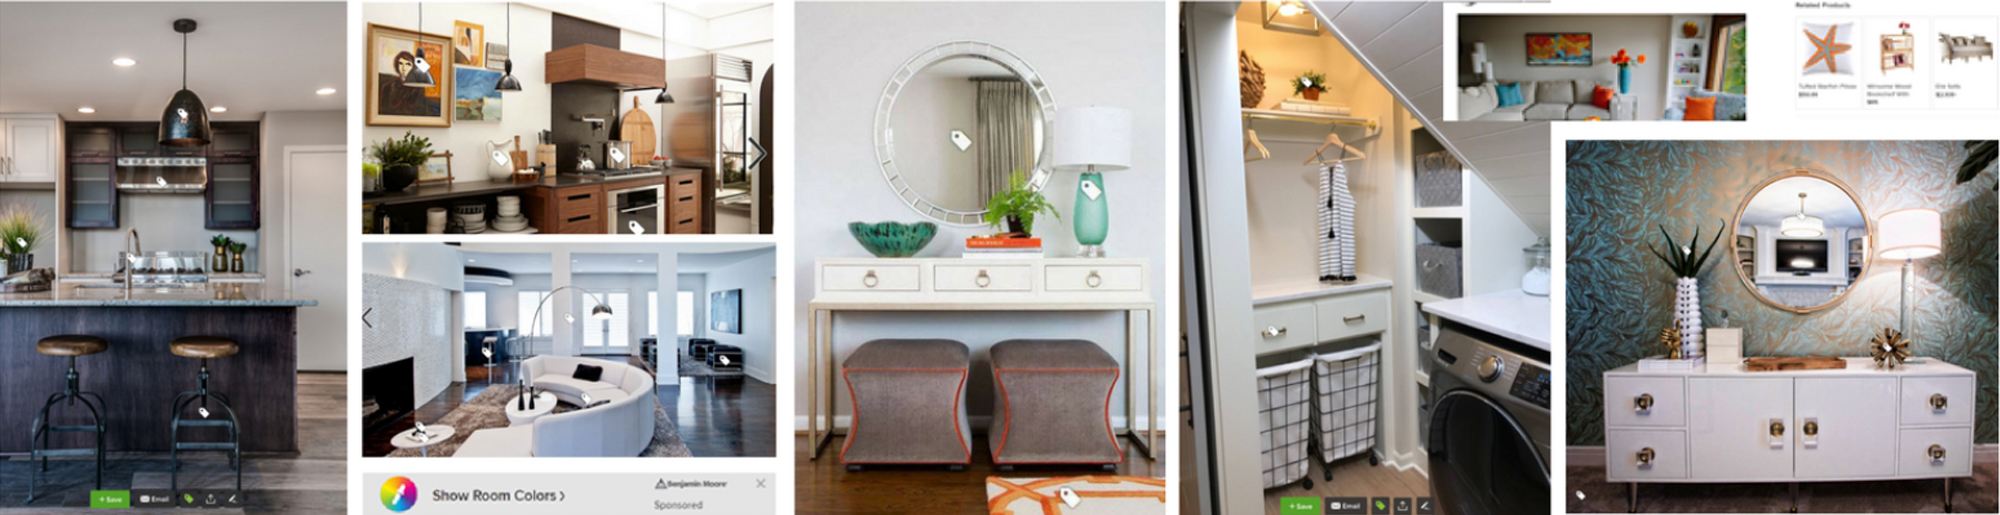 HOUZZ: STOP WITH THE DECEITFUL PRACTICES